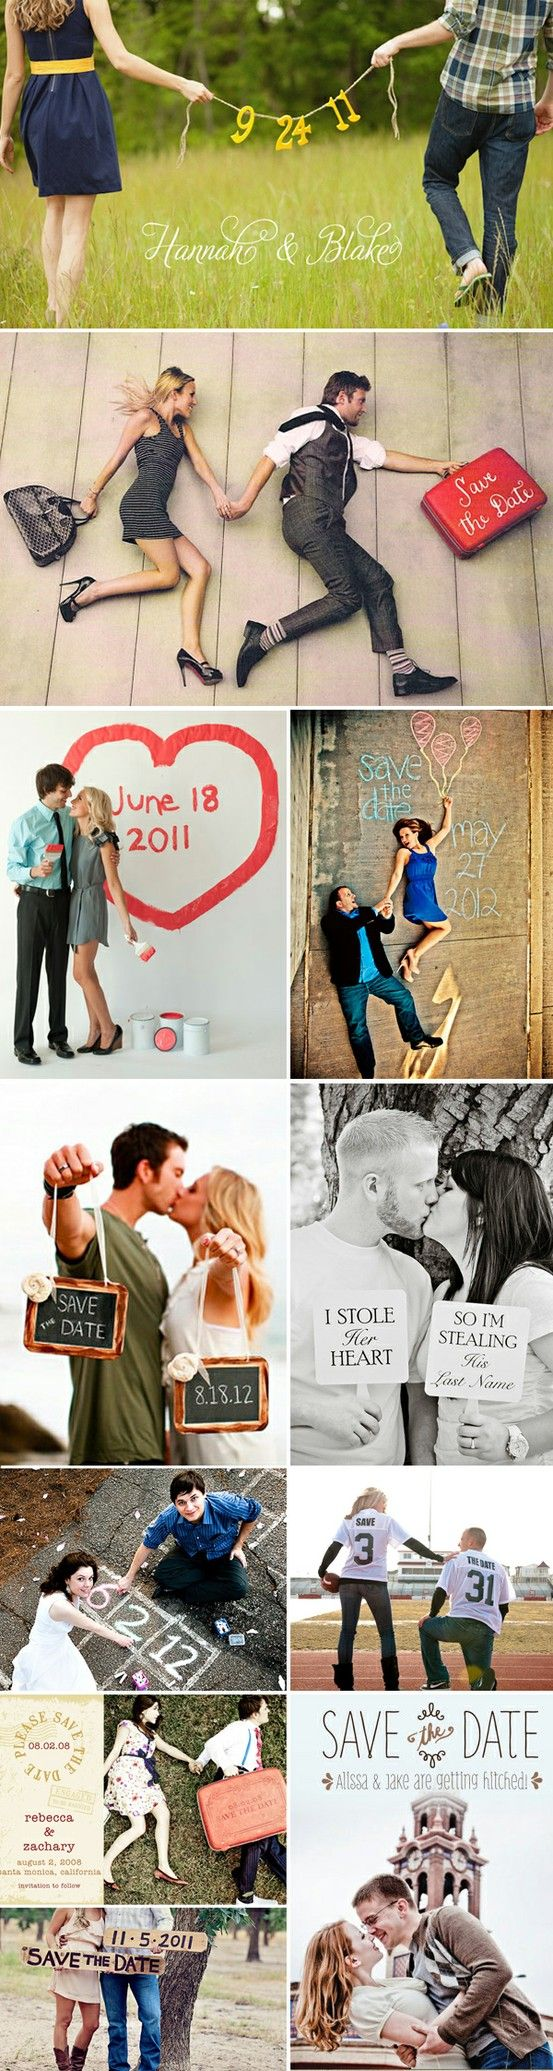 "Different save the date ideas. I like ""I stole her heart / So I'm stealing his last name"""